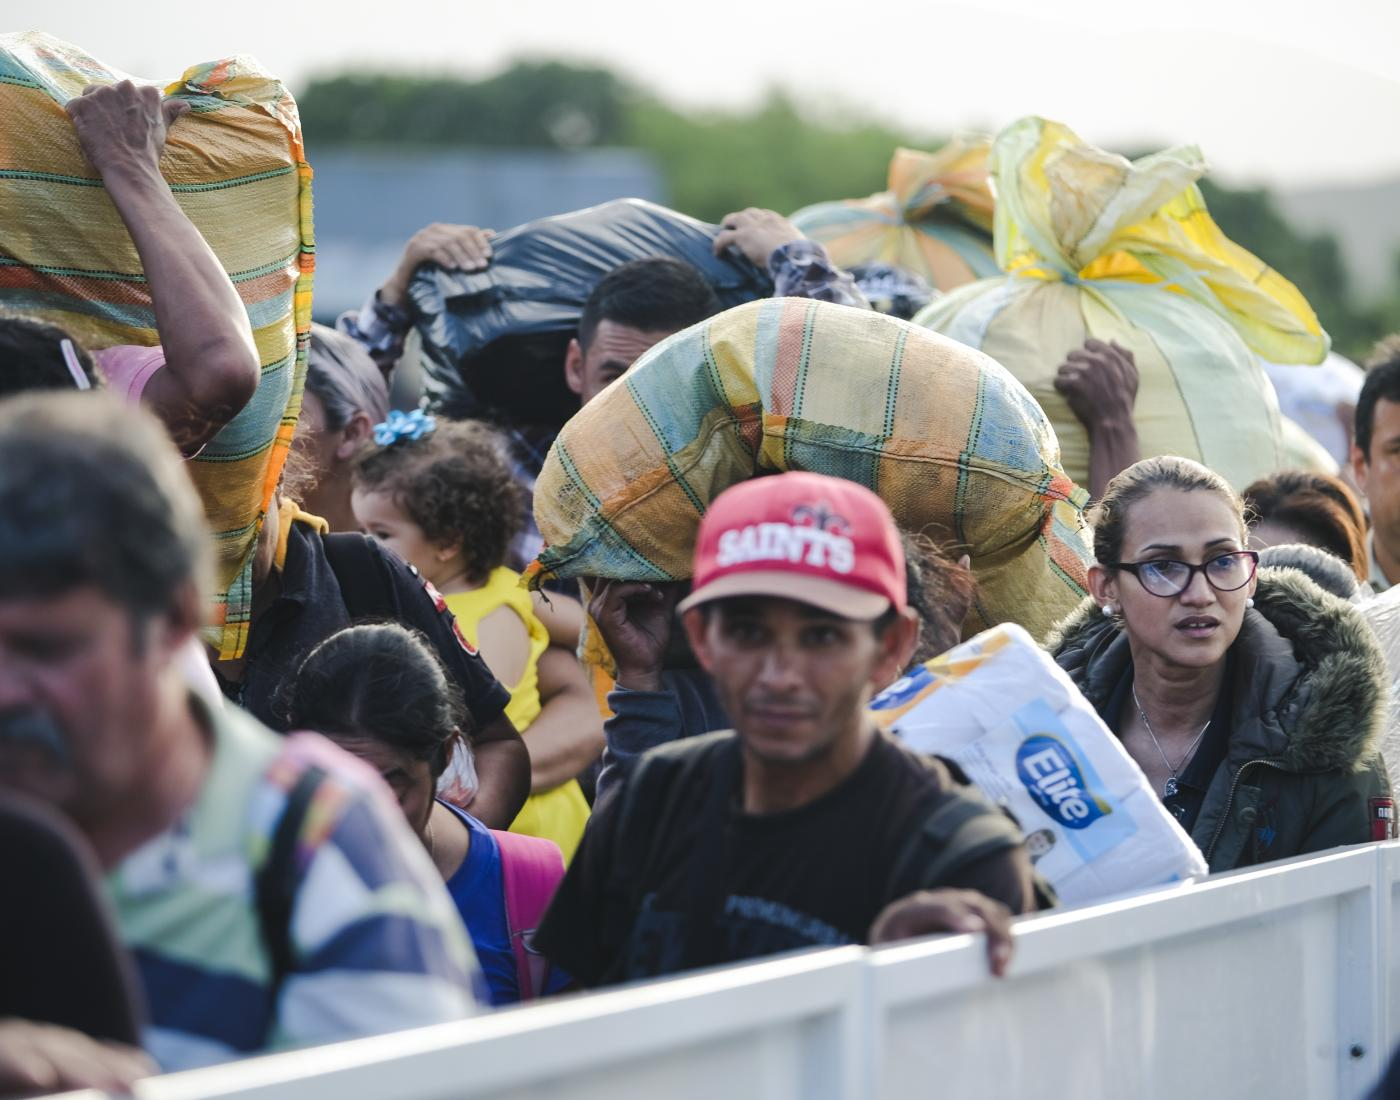 Venezuelan refugees crossing over to Colombia @Tdh Sebastian Delgado